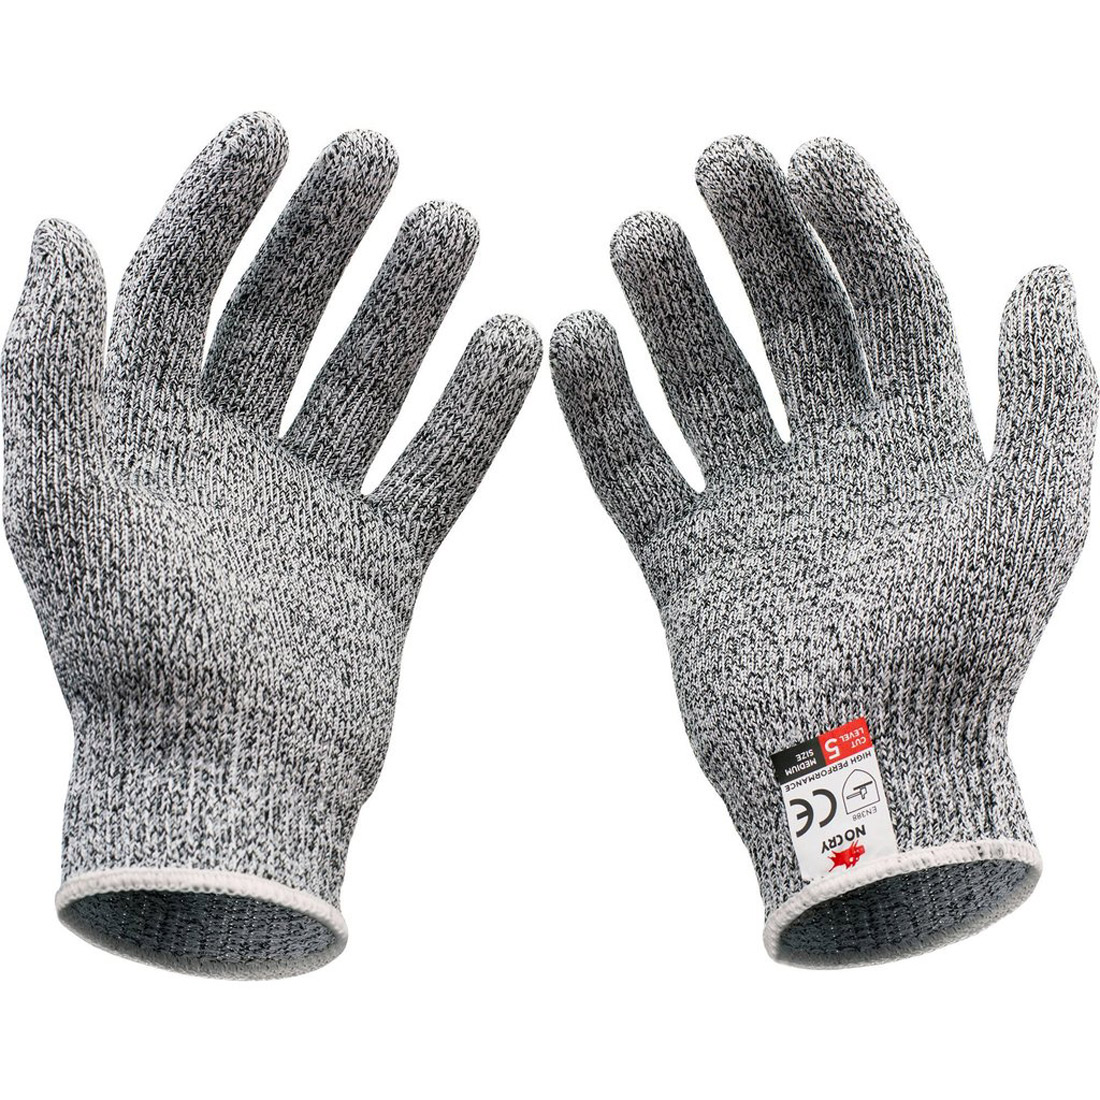 cut gloves for kitchen designs layouts nocry resistant food grade level 5 the